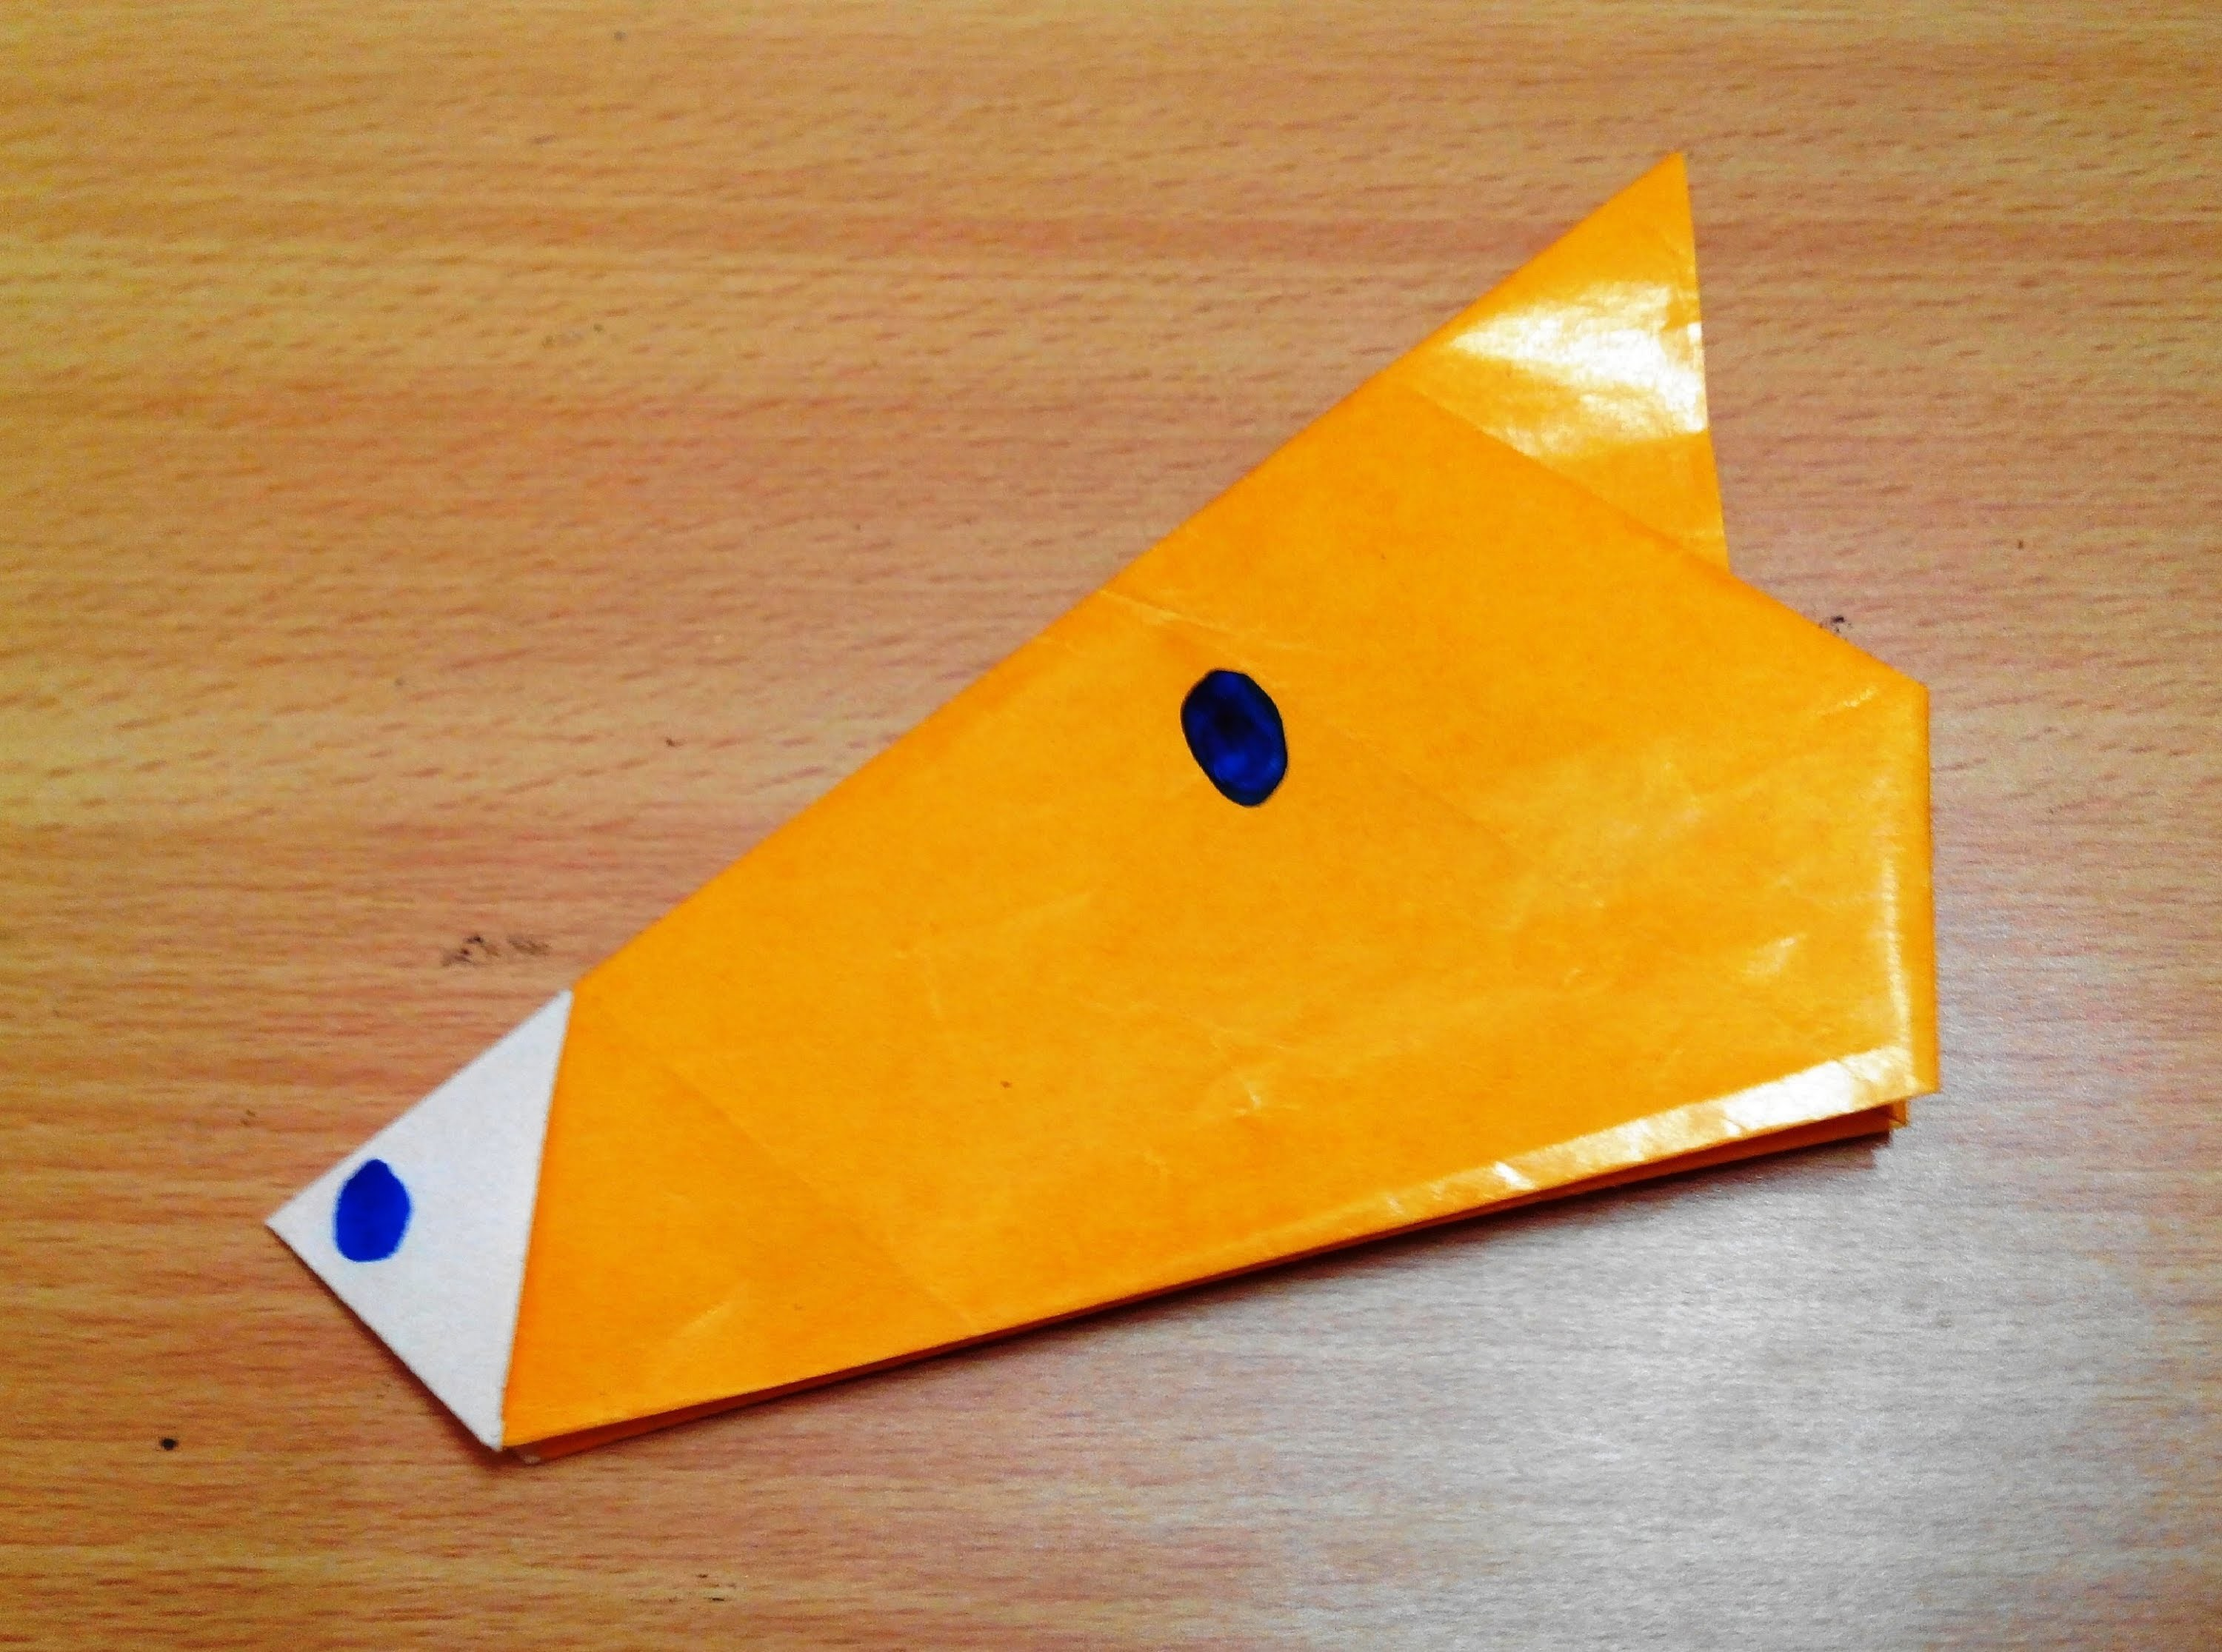 How to make an origami horse face step by step.